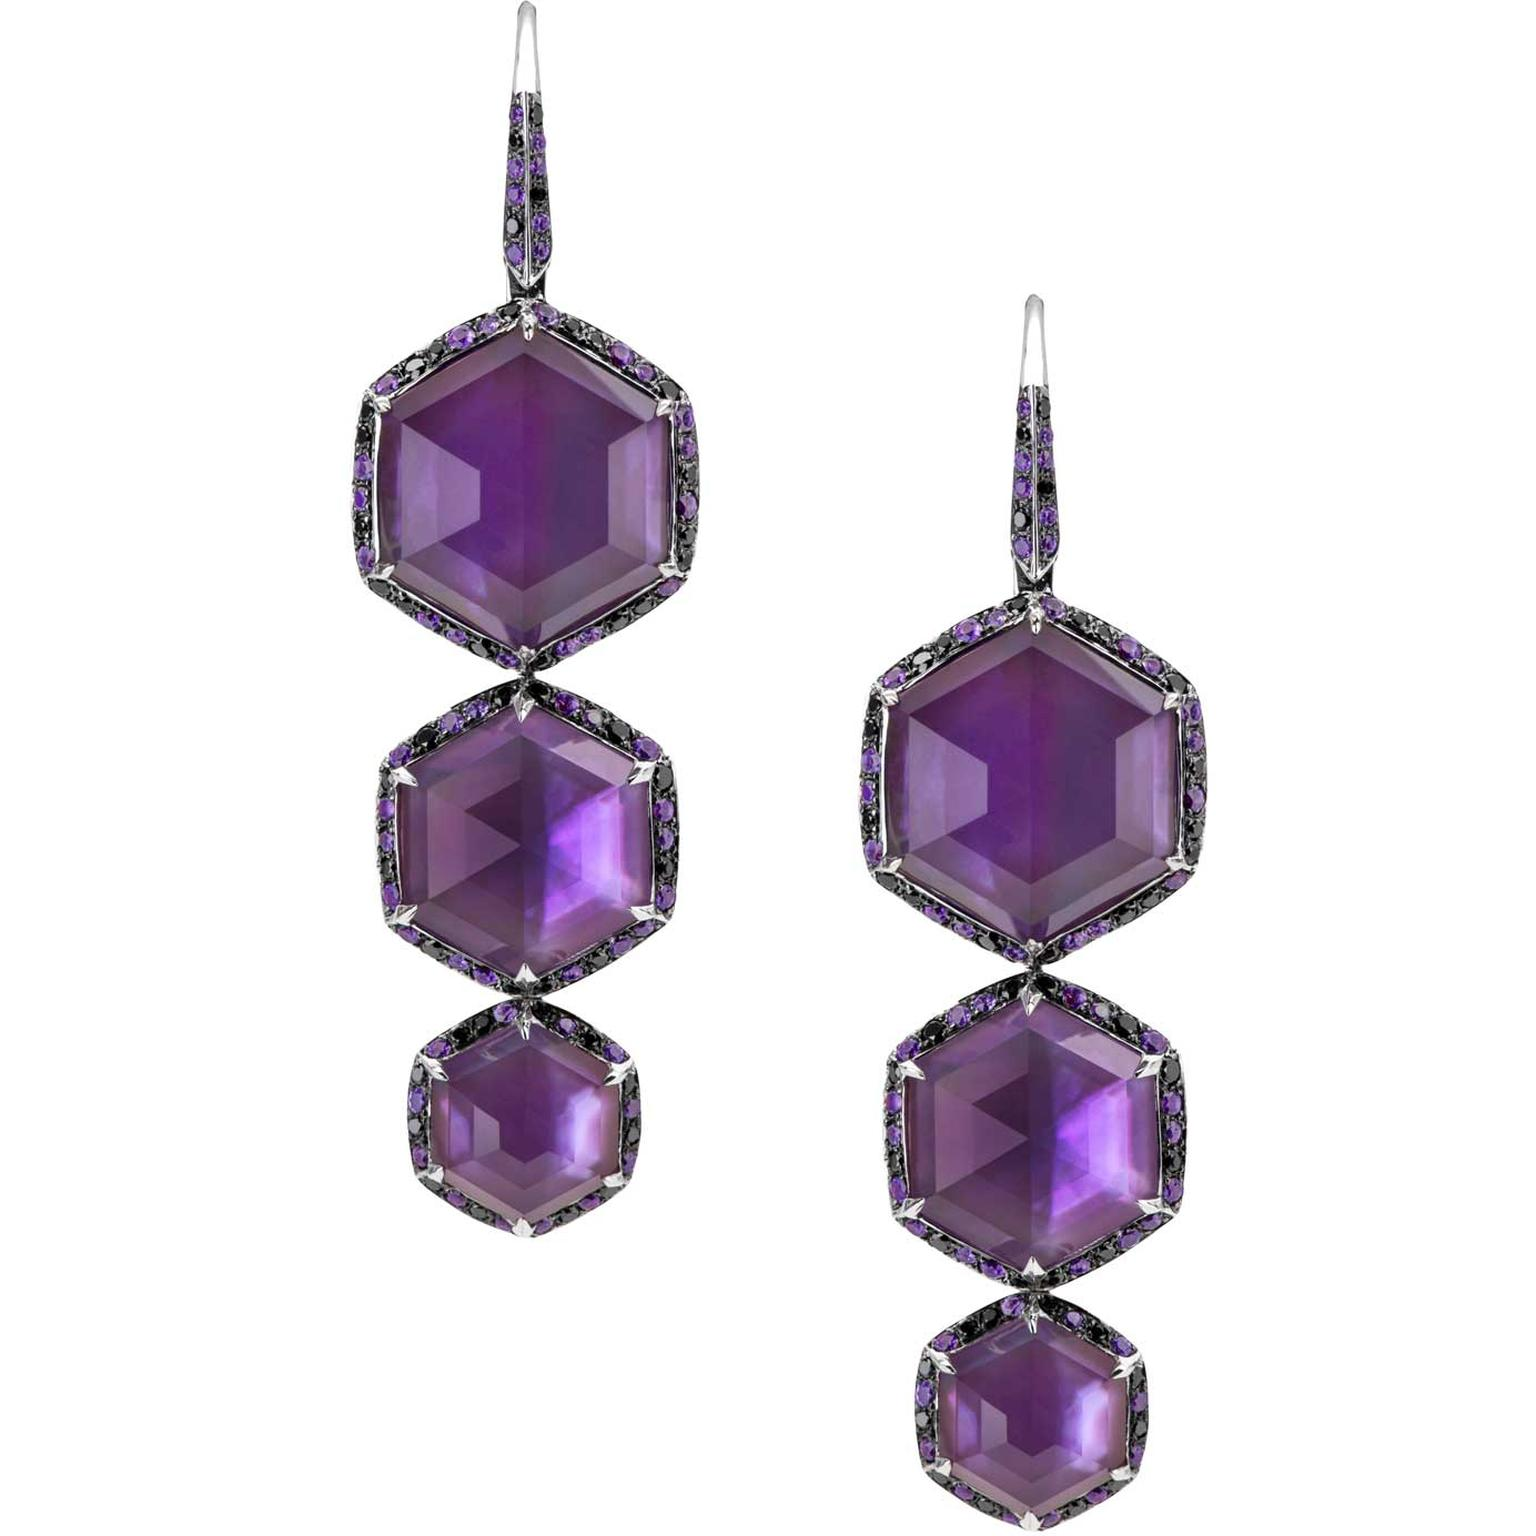 Stephen Webster amethyst drop earrings